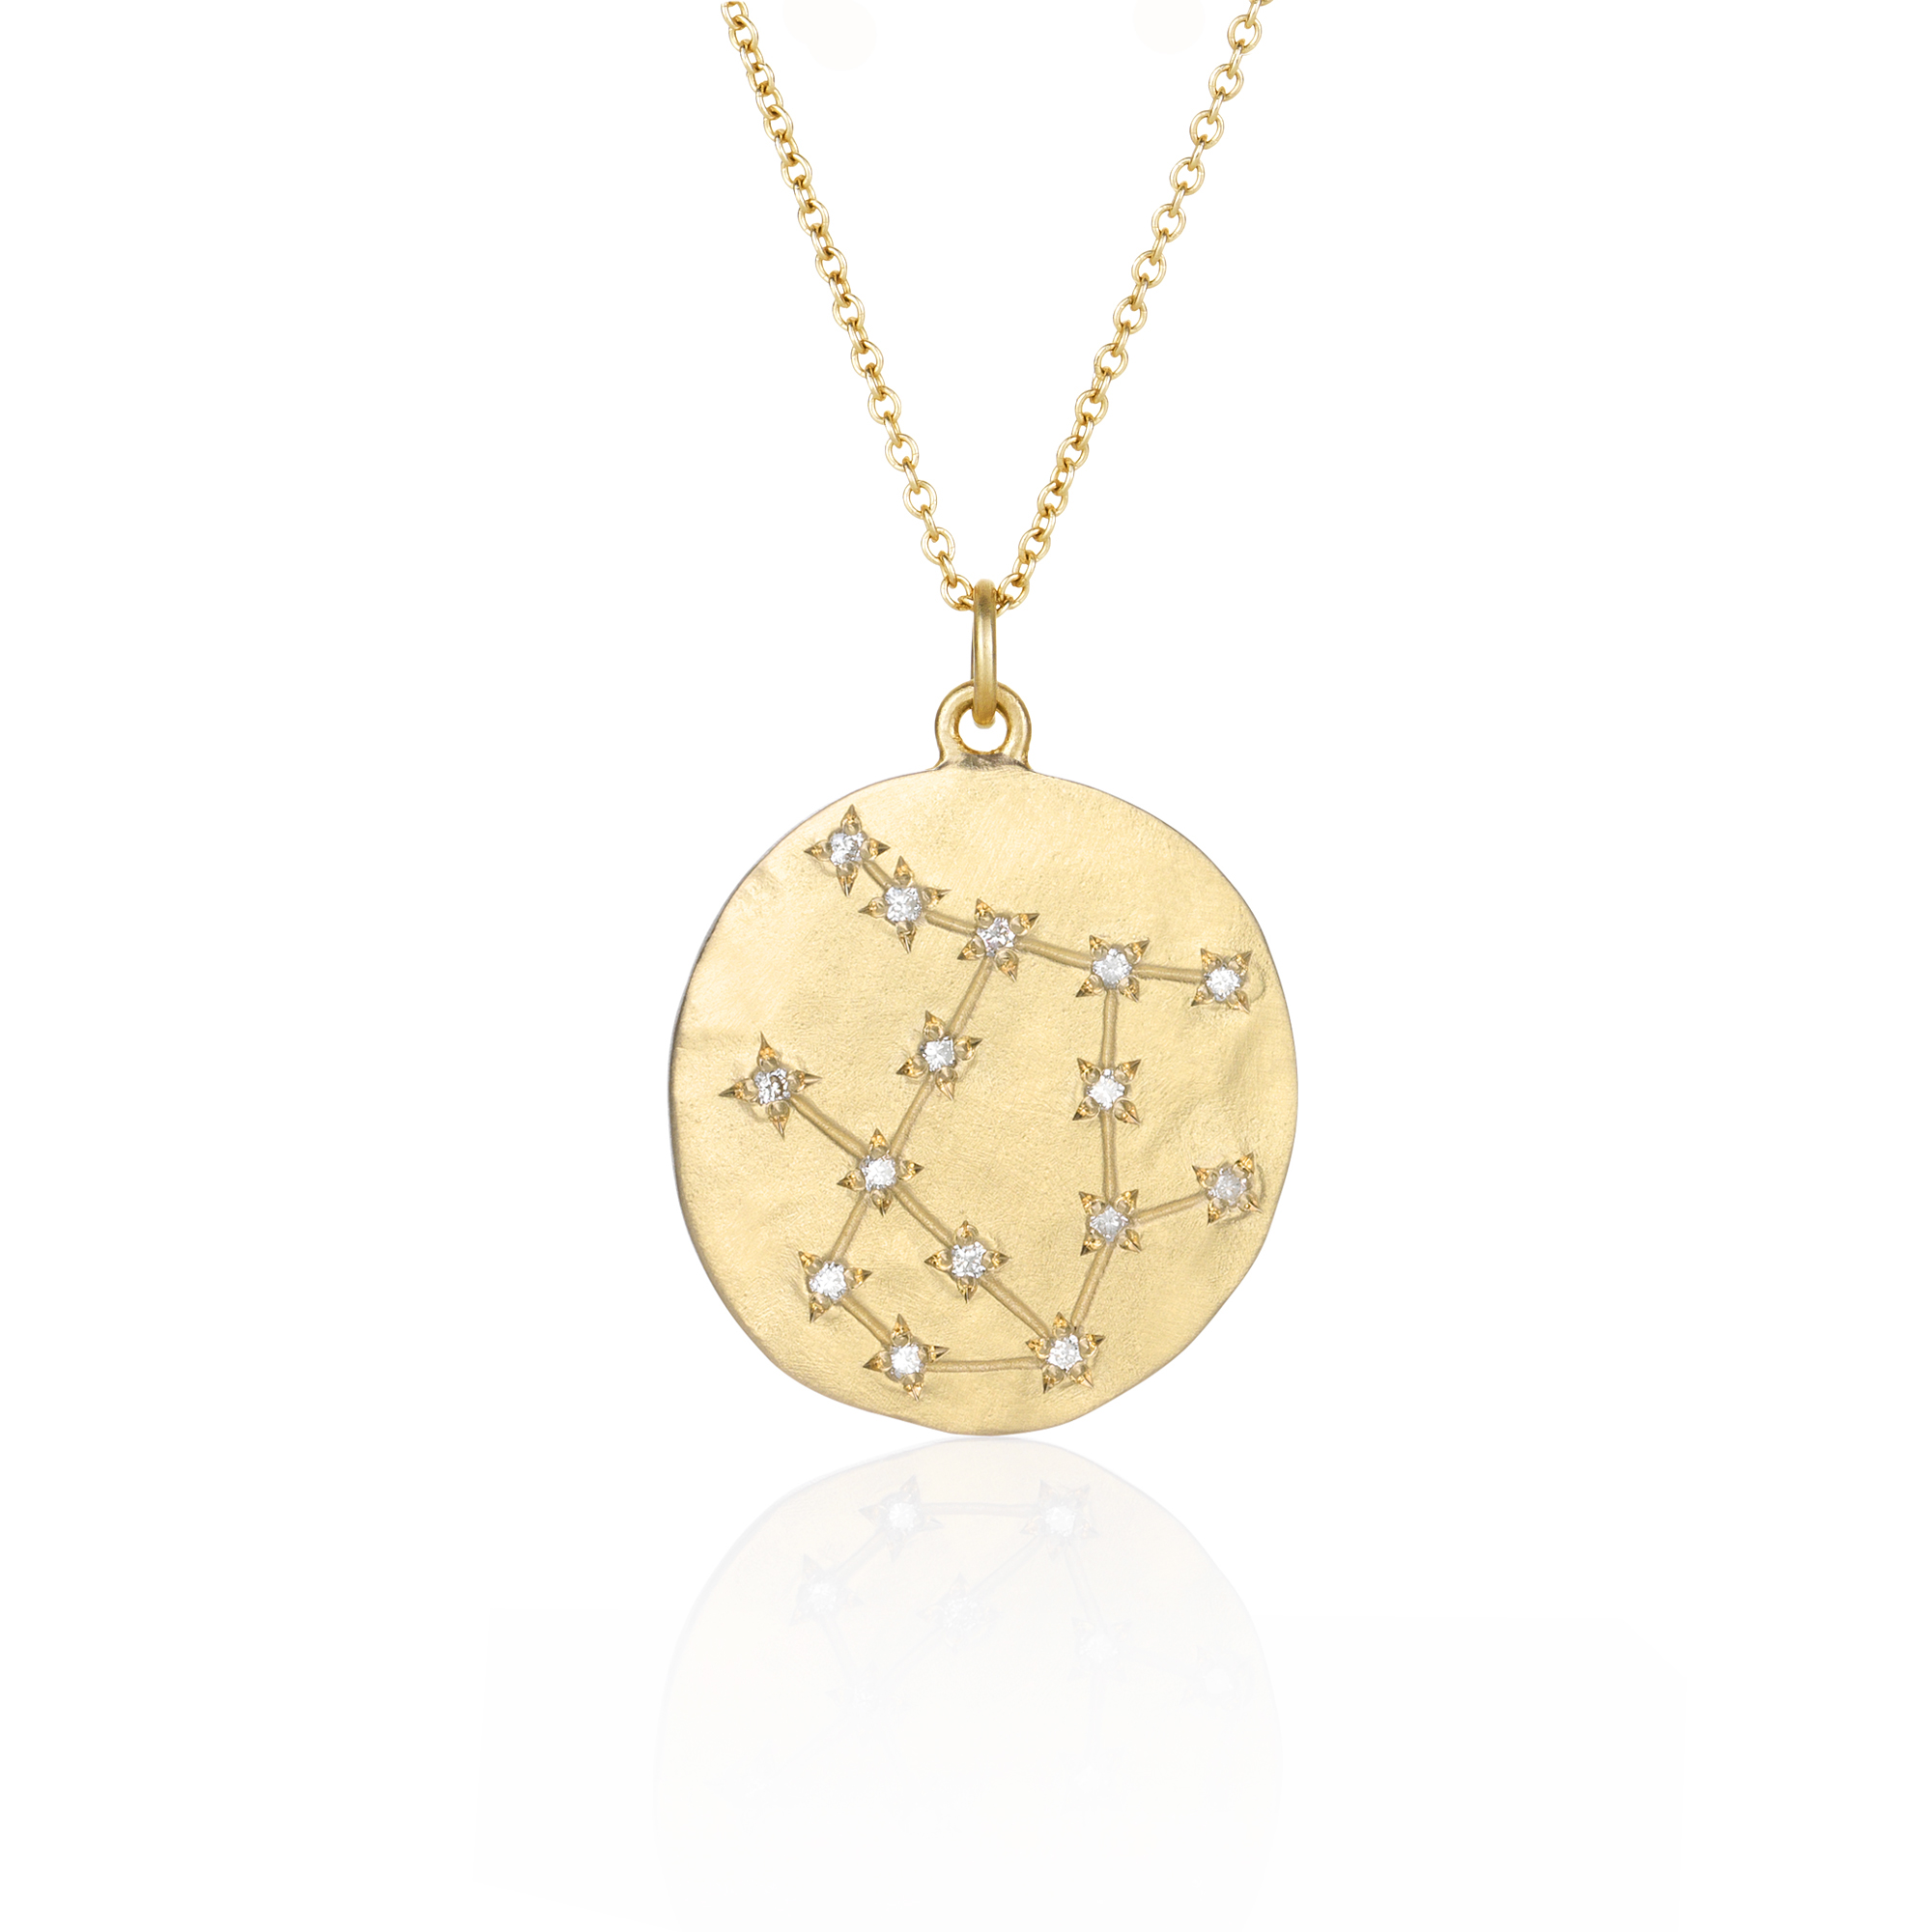 Brooke Gregson Gemini necklace